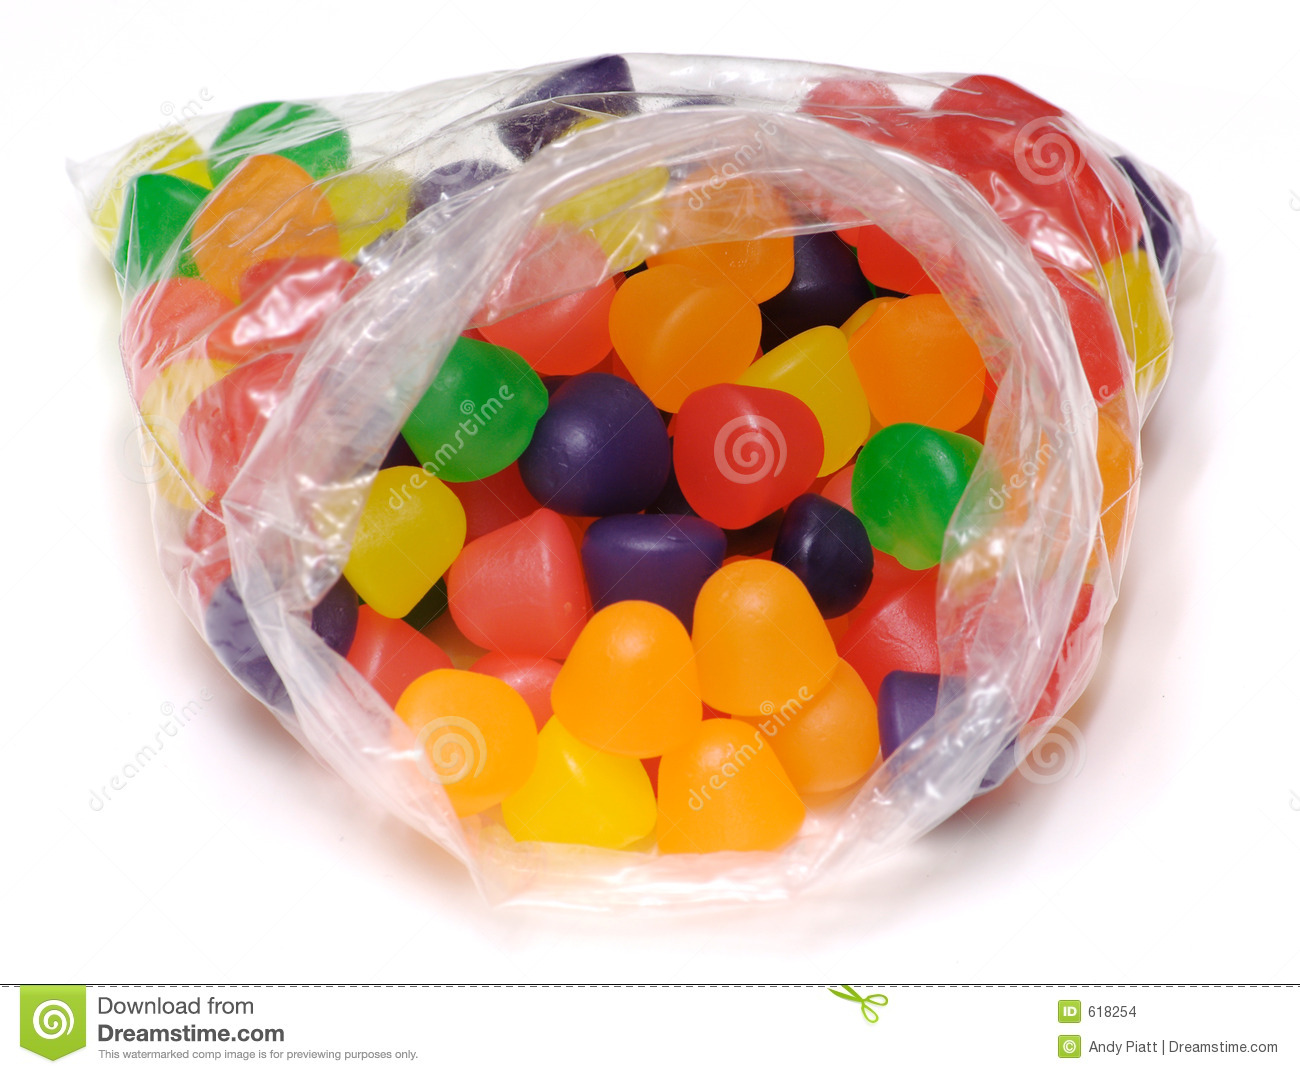 Isolated Bag of Gumdrops